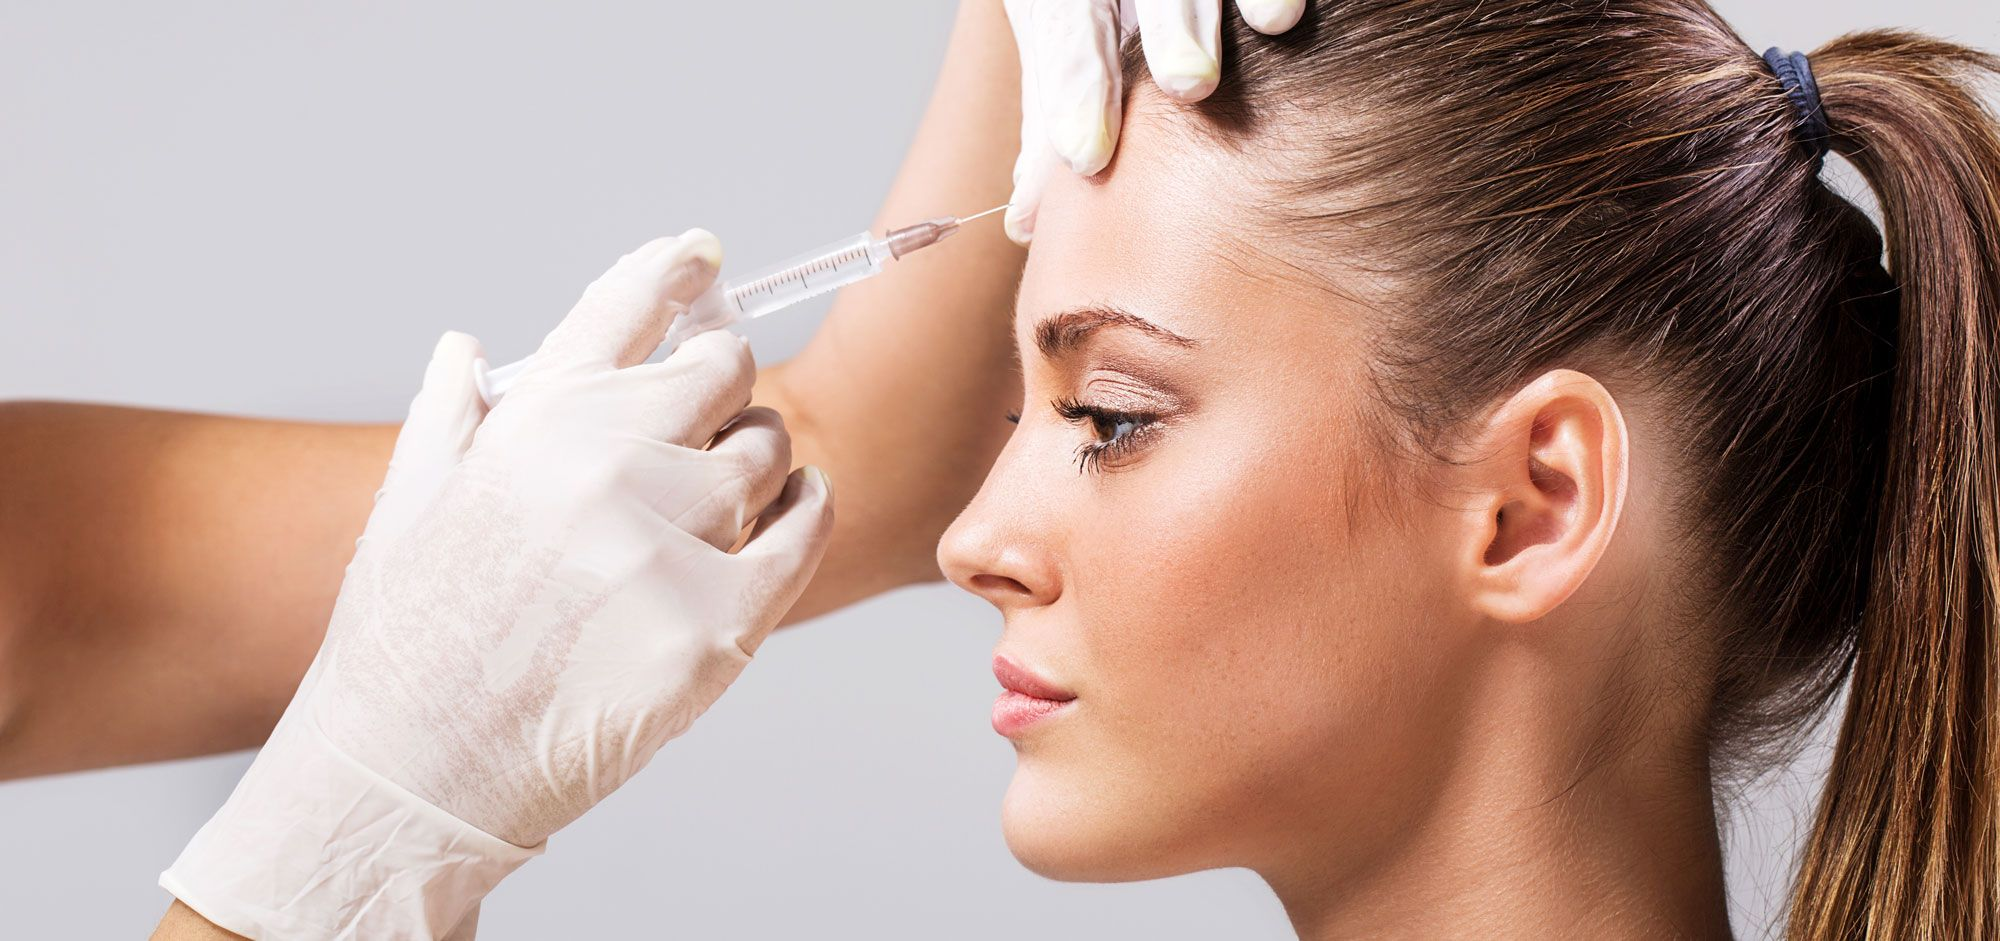 Services IV Hydration / IV Therapy HYDRATE ME Botox